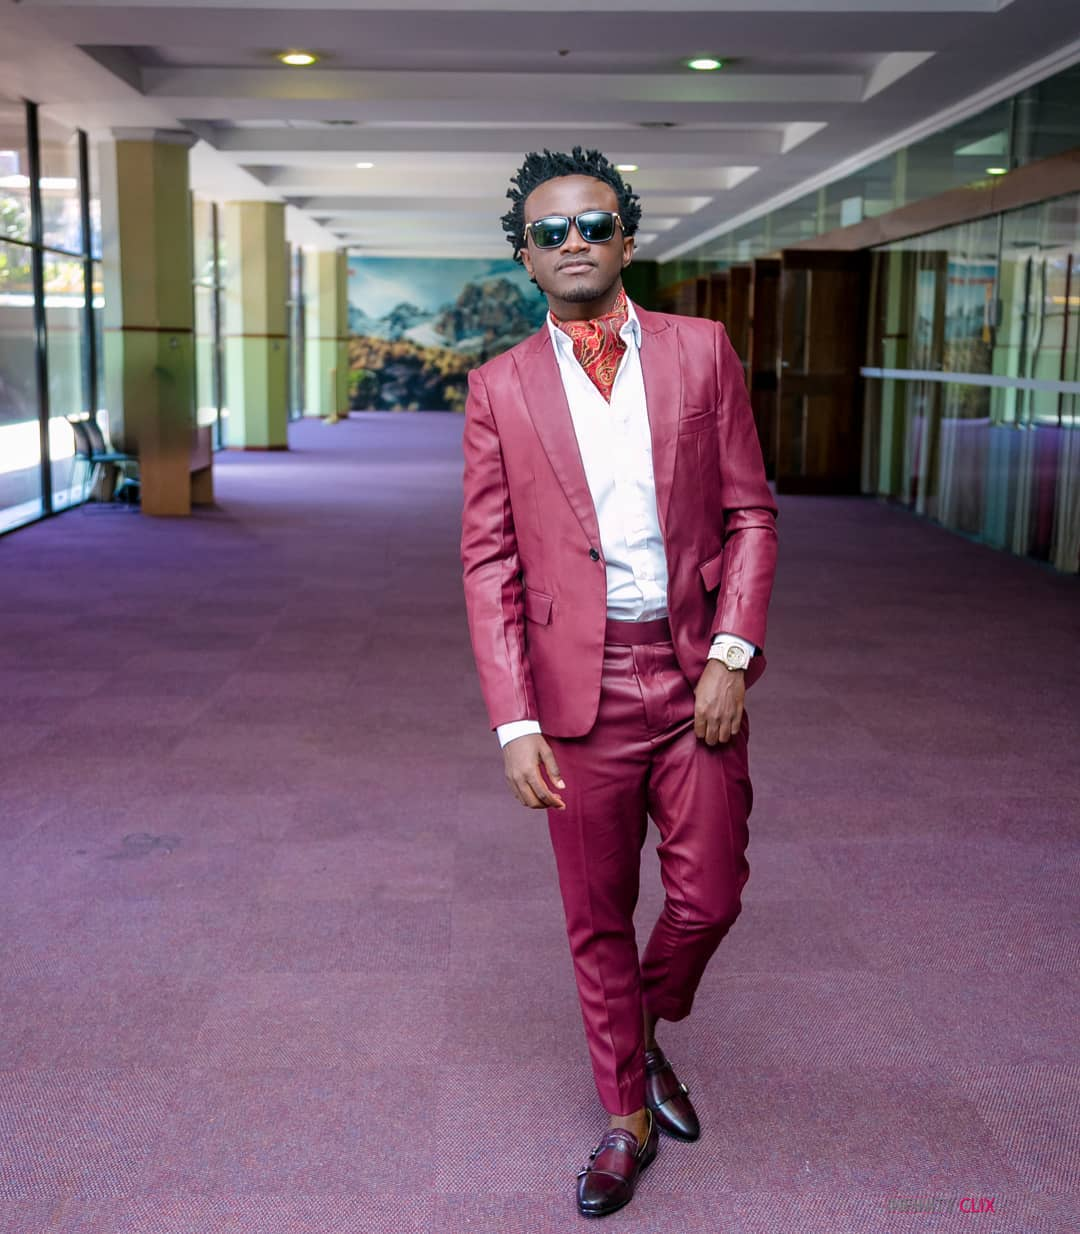 53690437 2055466401168314 7175501559507460443 n - Mimi nina kiherehere sana-Bahati reveals why he does not respond to scandals